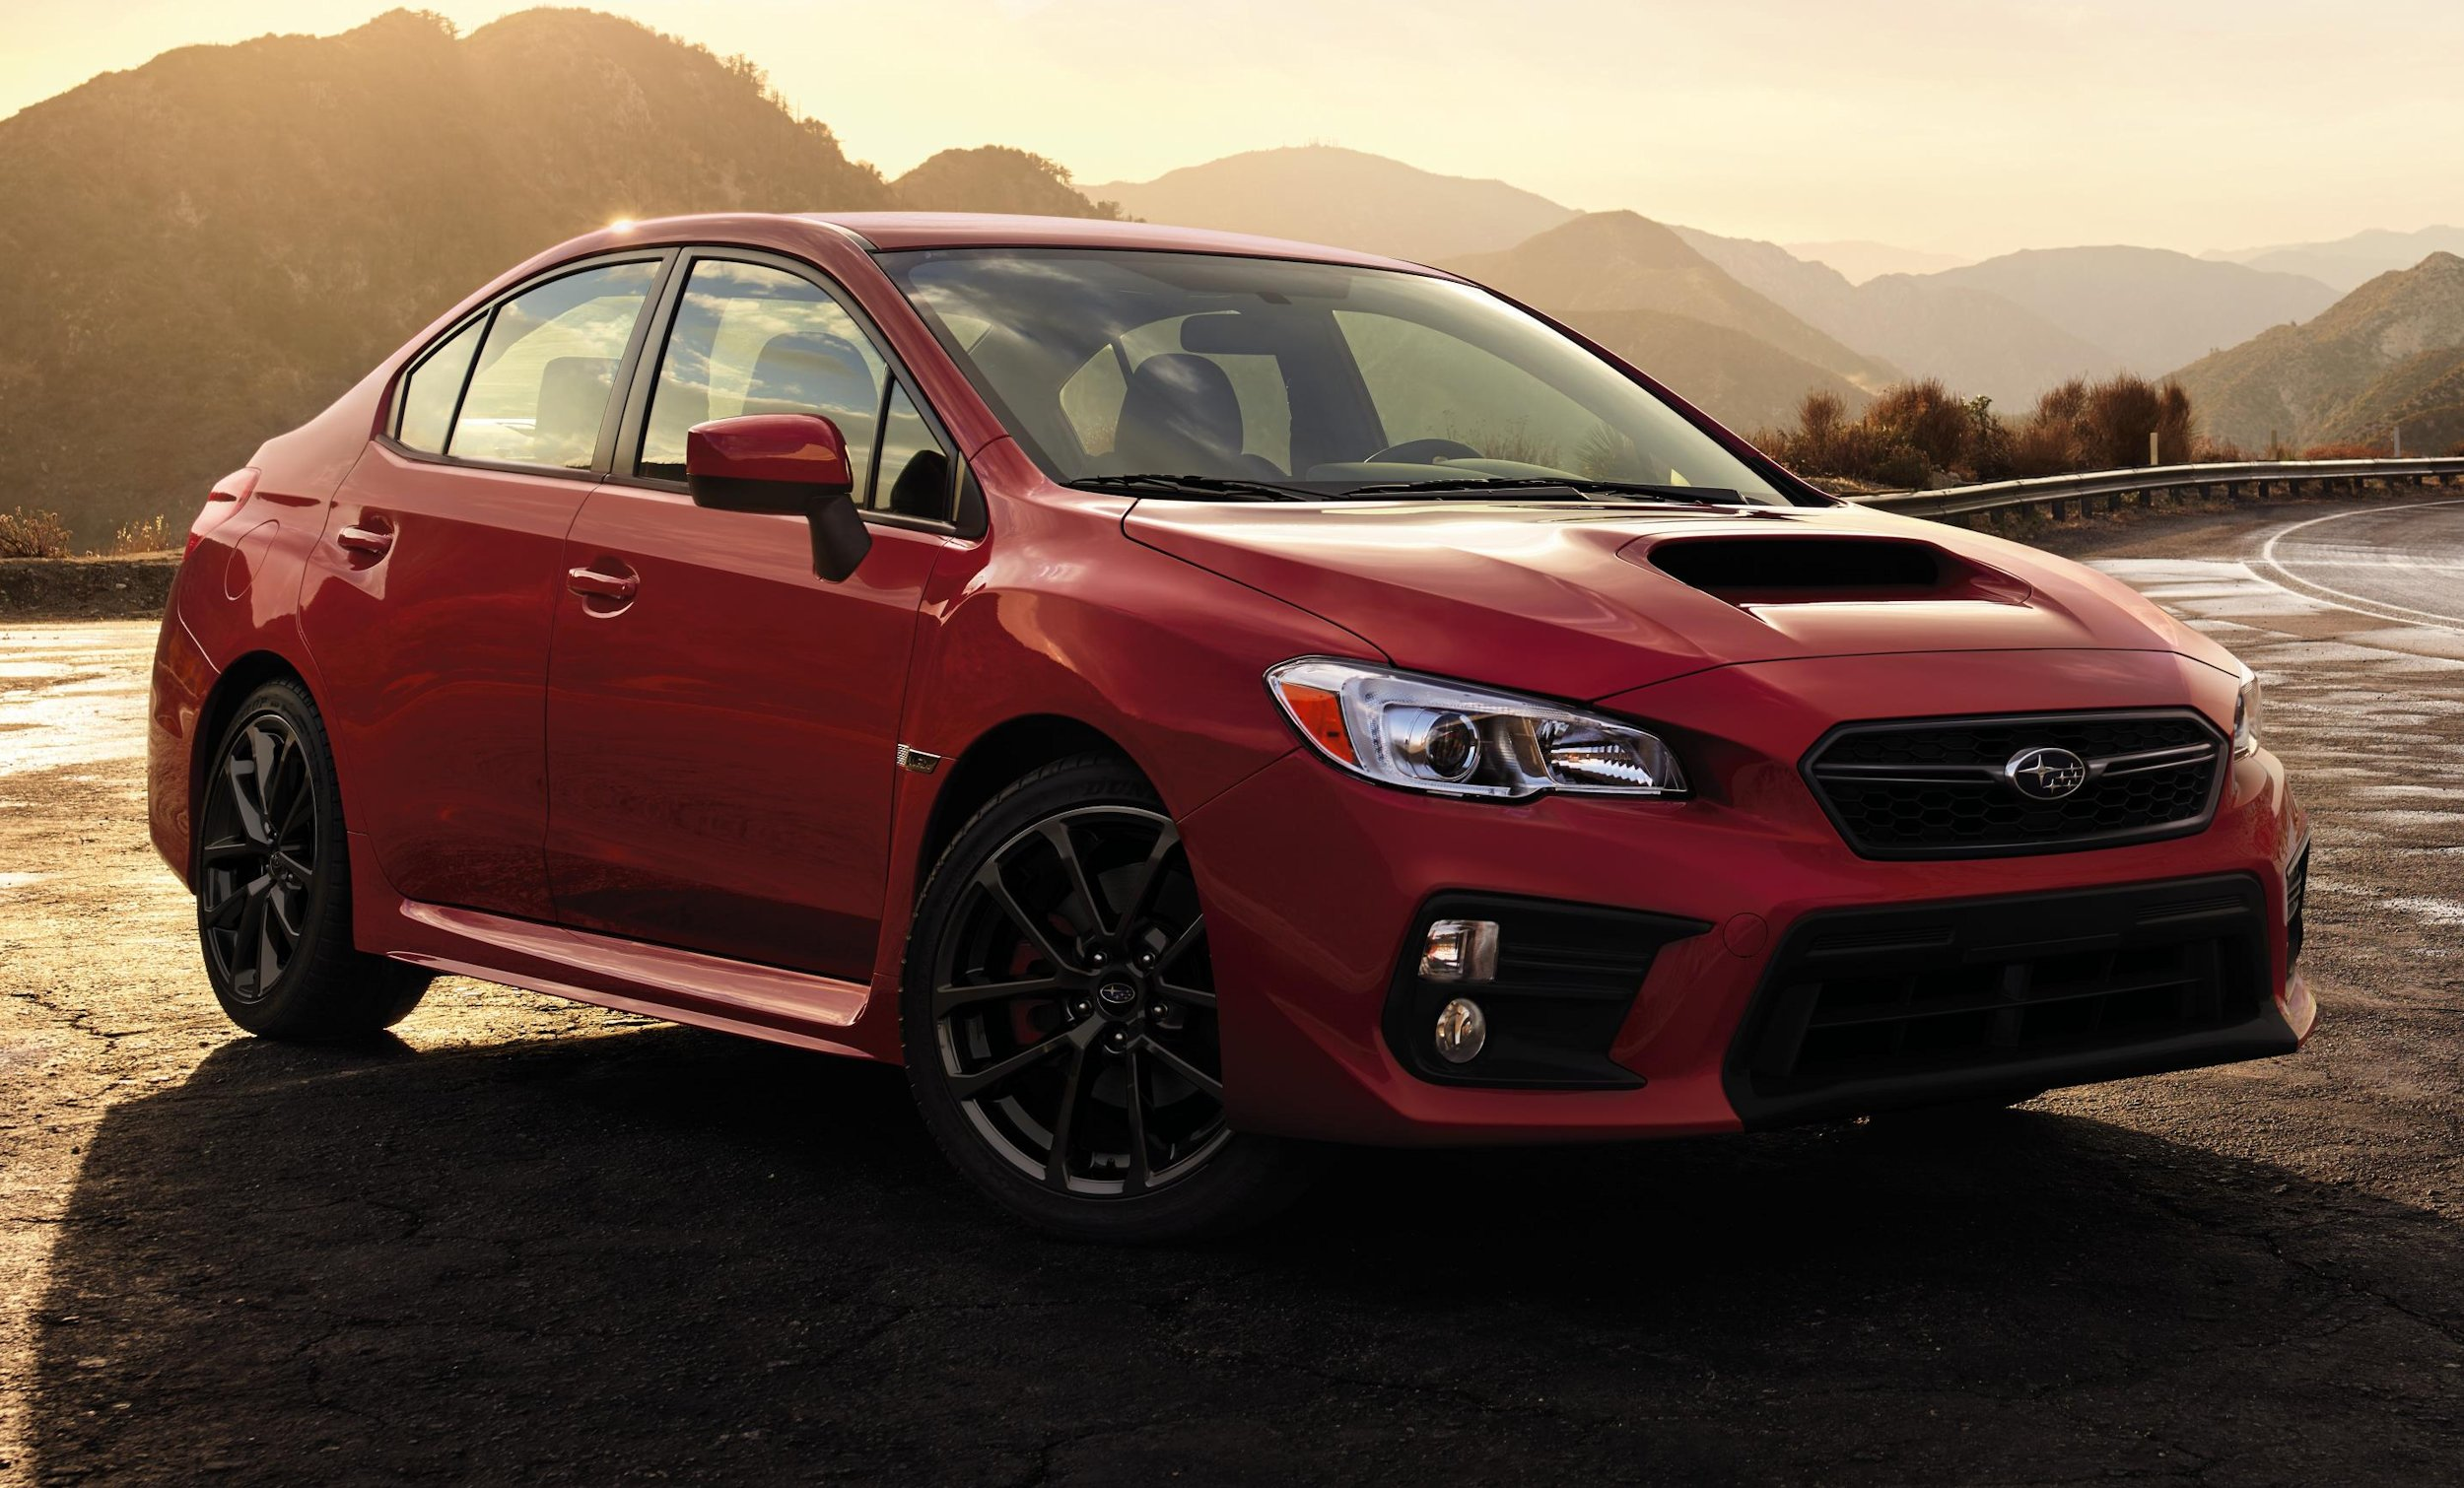 SUBARU DEBUTS 2018 WRX AND WRX STI WITH PERFORMANCE, COMFORT